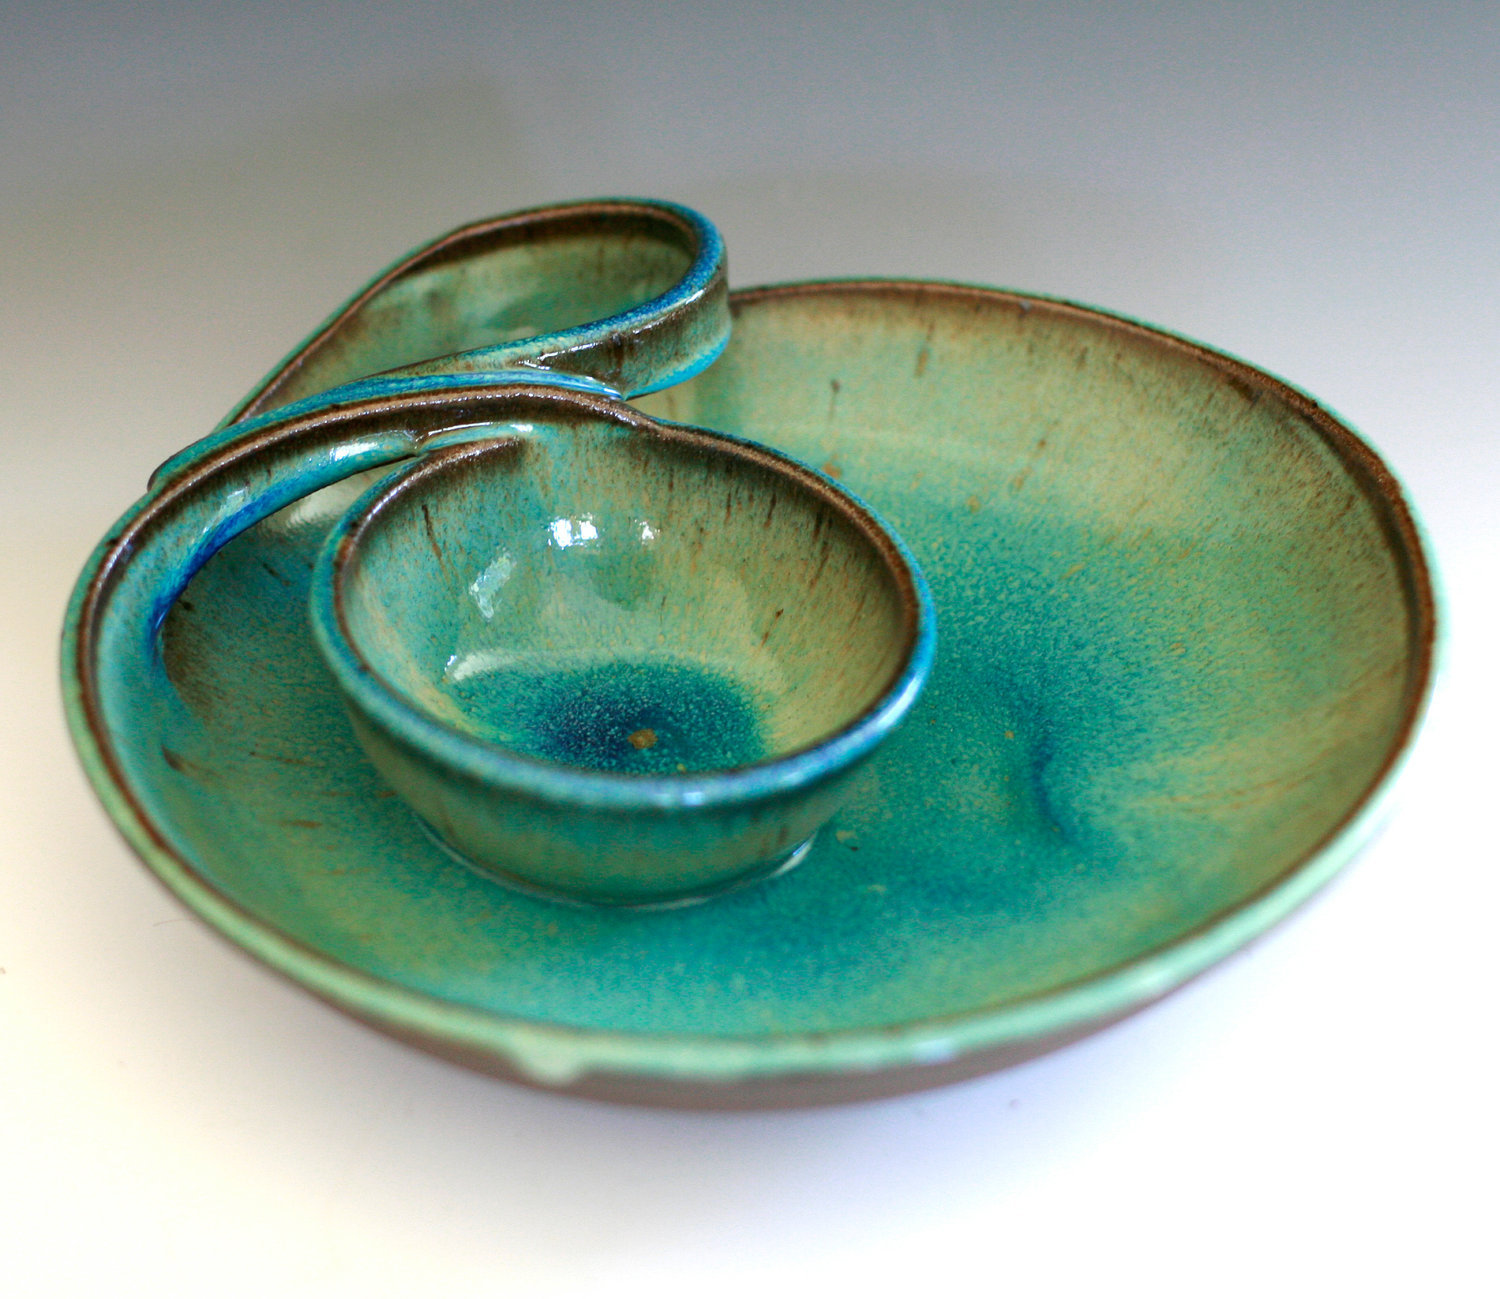 Http Wanelo Com P 2170534 Chip And Dip Handmade Ceramic Dish Ceramics And Pottery